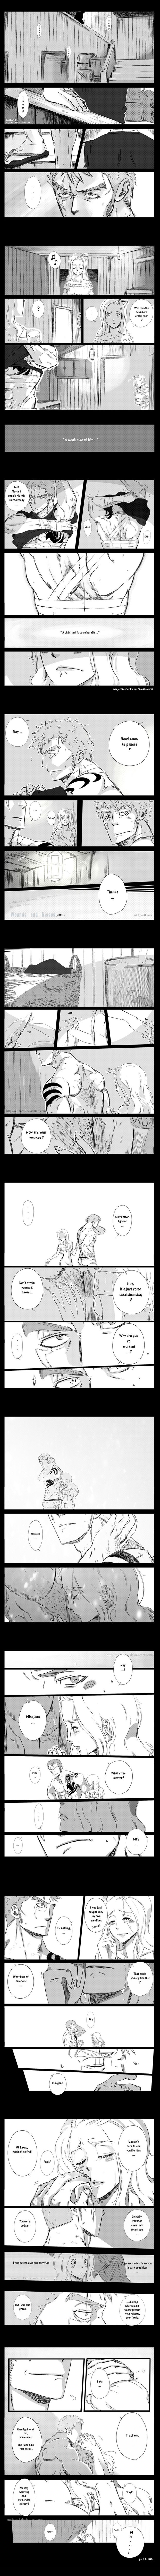 Wounds and Kisses - part.1 by AUTHOR45 on DeviantArt